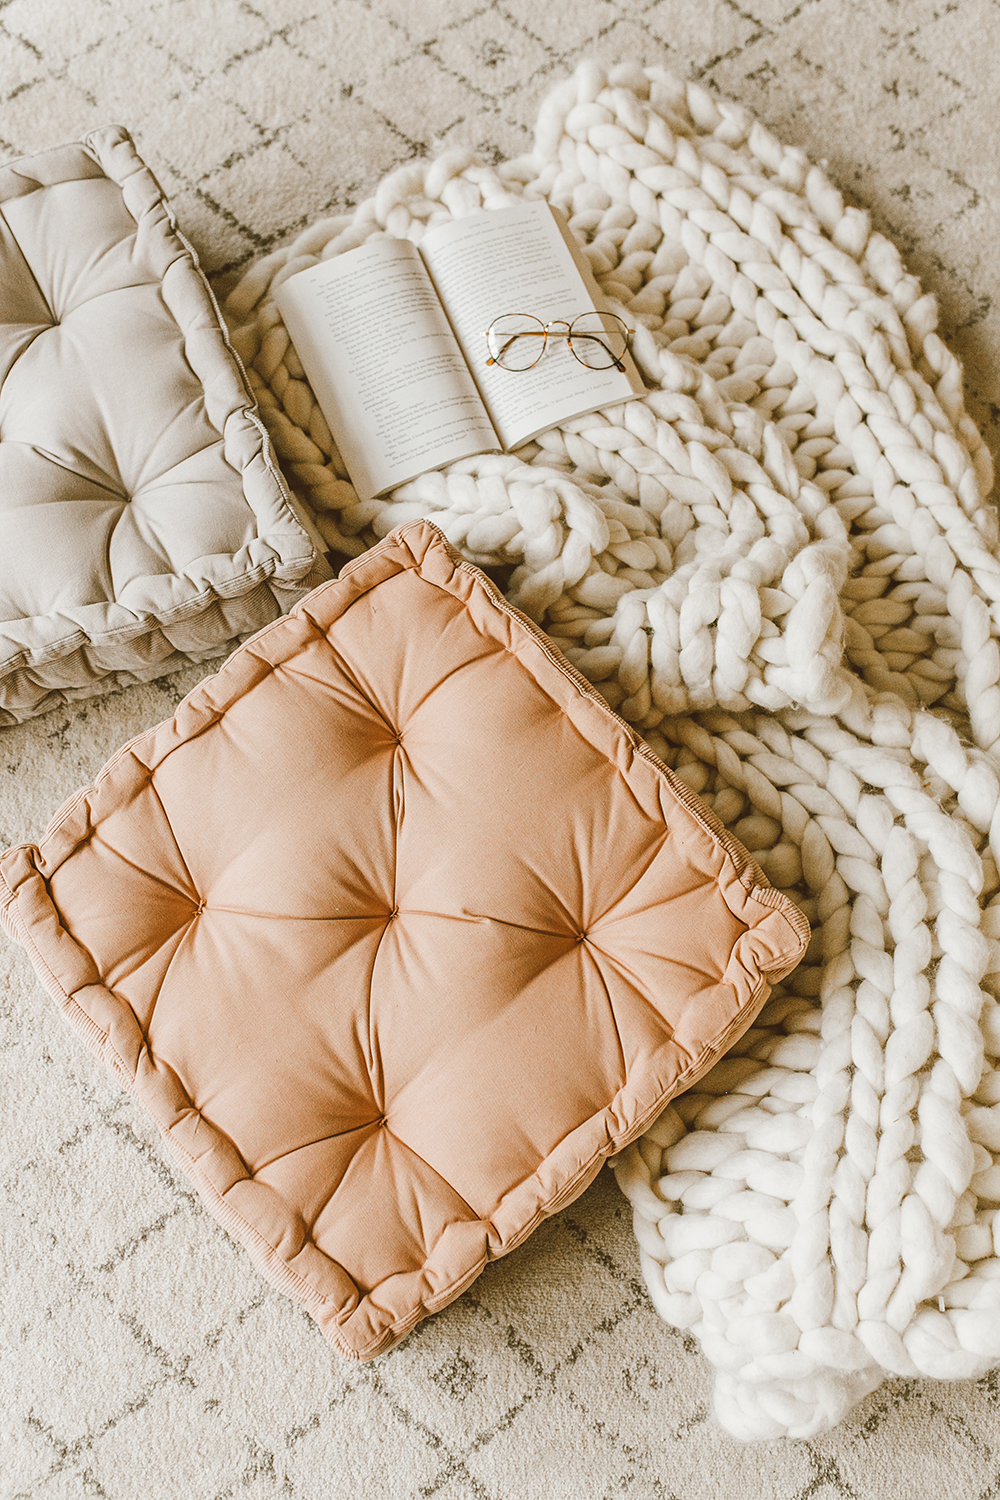 livvyland blog olivia watson austin texas lifestyle blog urban outfitters home decor bohemian cozy floor cushions rose blush 2 - A Few Cozy Decor Updates